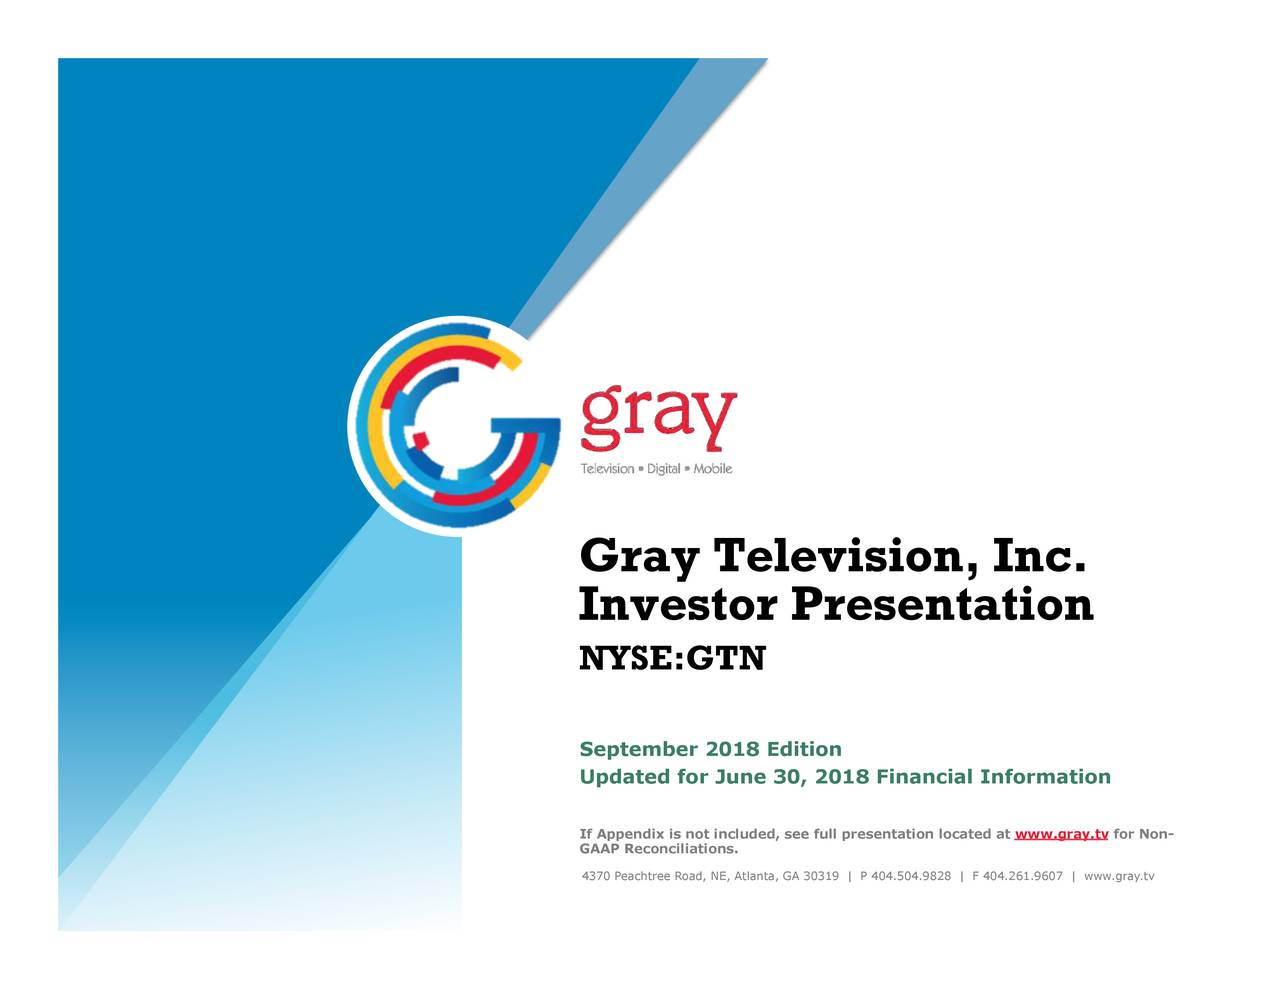 Investor Presentation NYSE:GTN September 2018 Edition Updated for June 30, 2018 Financial Information GAAP Reconciliations.cluded, see full presentation located at www.gray.tv for Non- 4370 Peachtree Road, NE, Atlanta, GA 30319   P 404.504.9828   F 404.261.9607   www.gray.tv 1